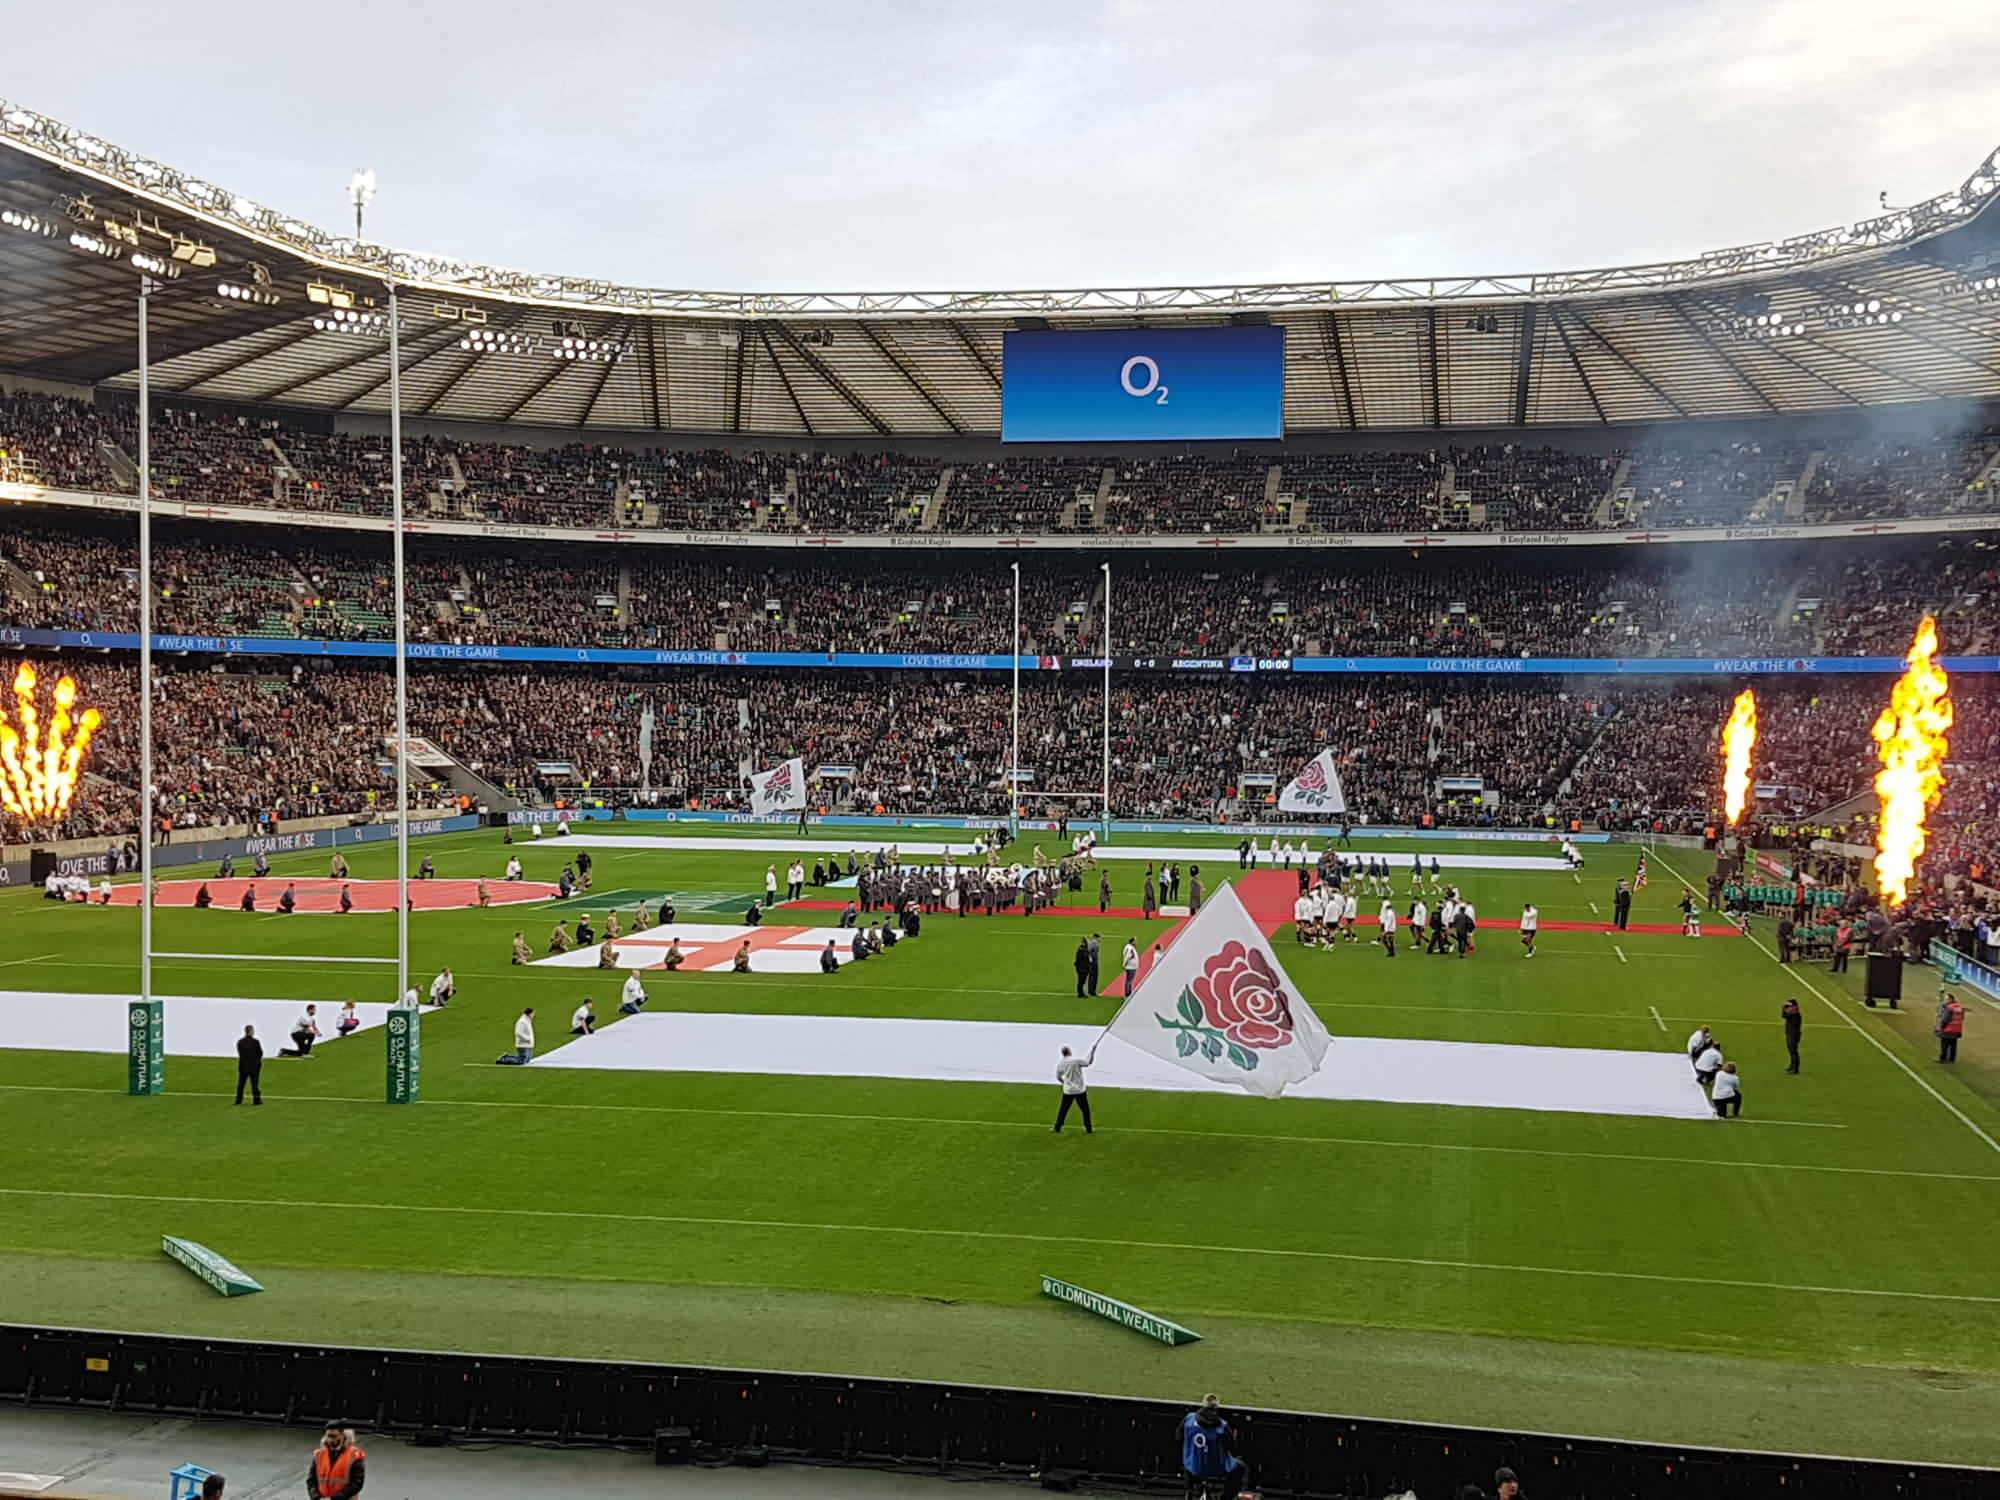 View from Seat Block L13 at Twickenham Stadium